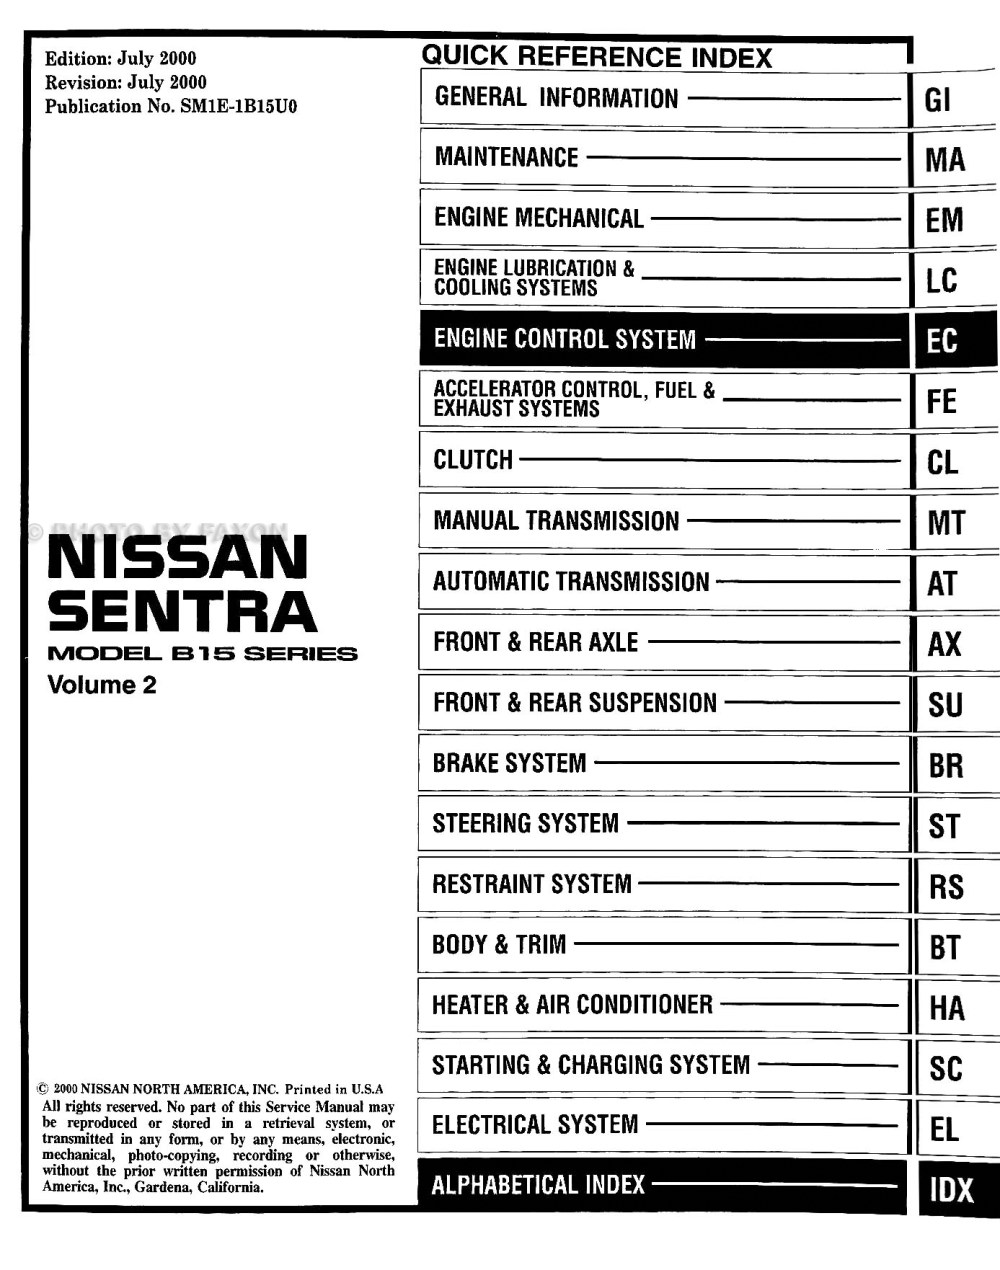 medium resolution of 94 nissan sentra fuse diagram wiring library mini cooper fuse box diagram 1994 nissan sentra fuse box